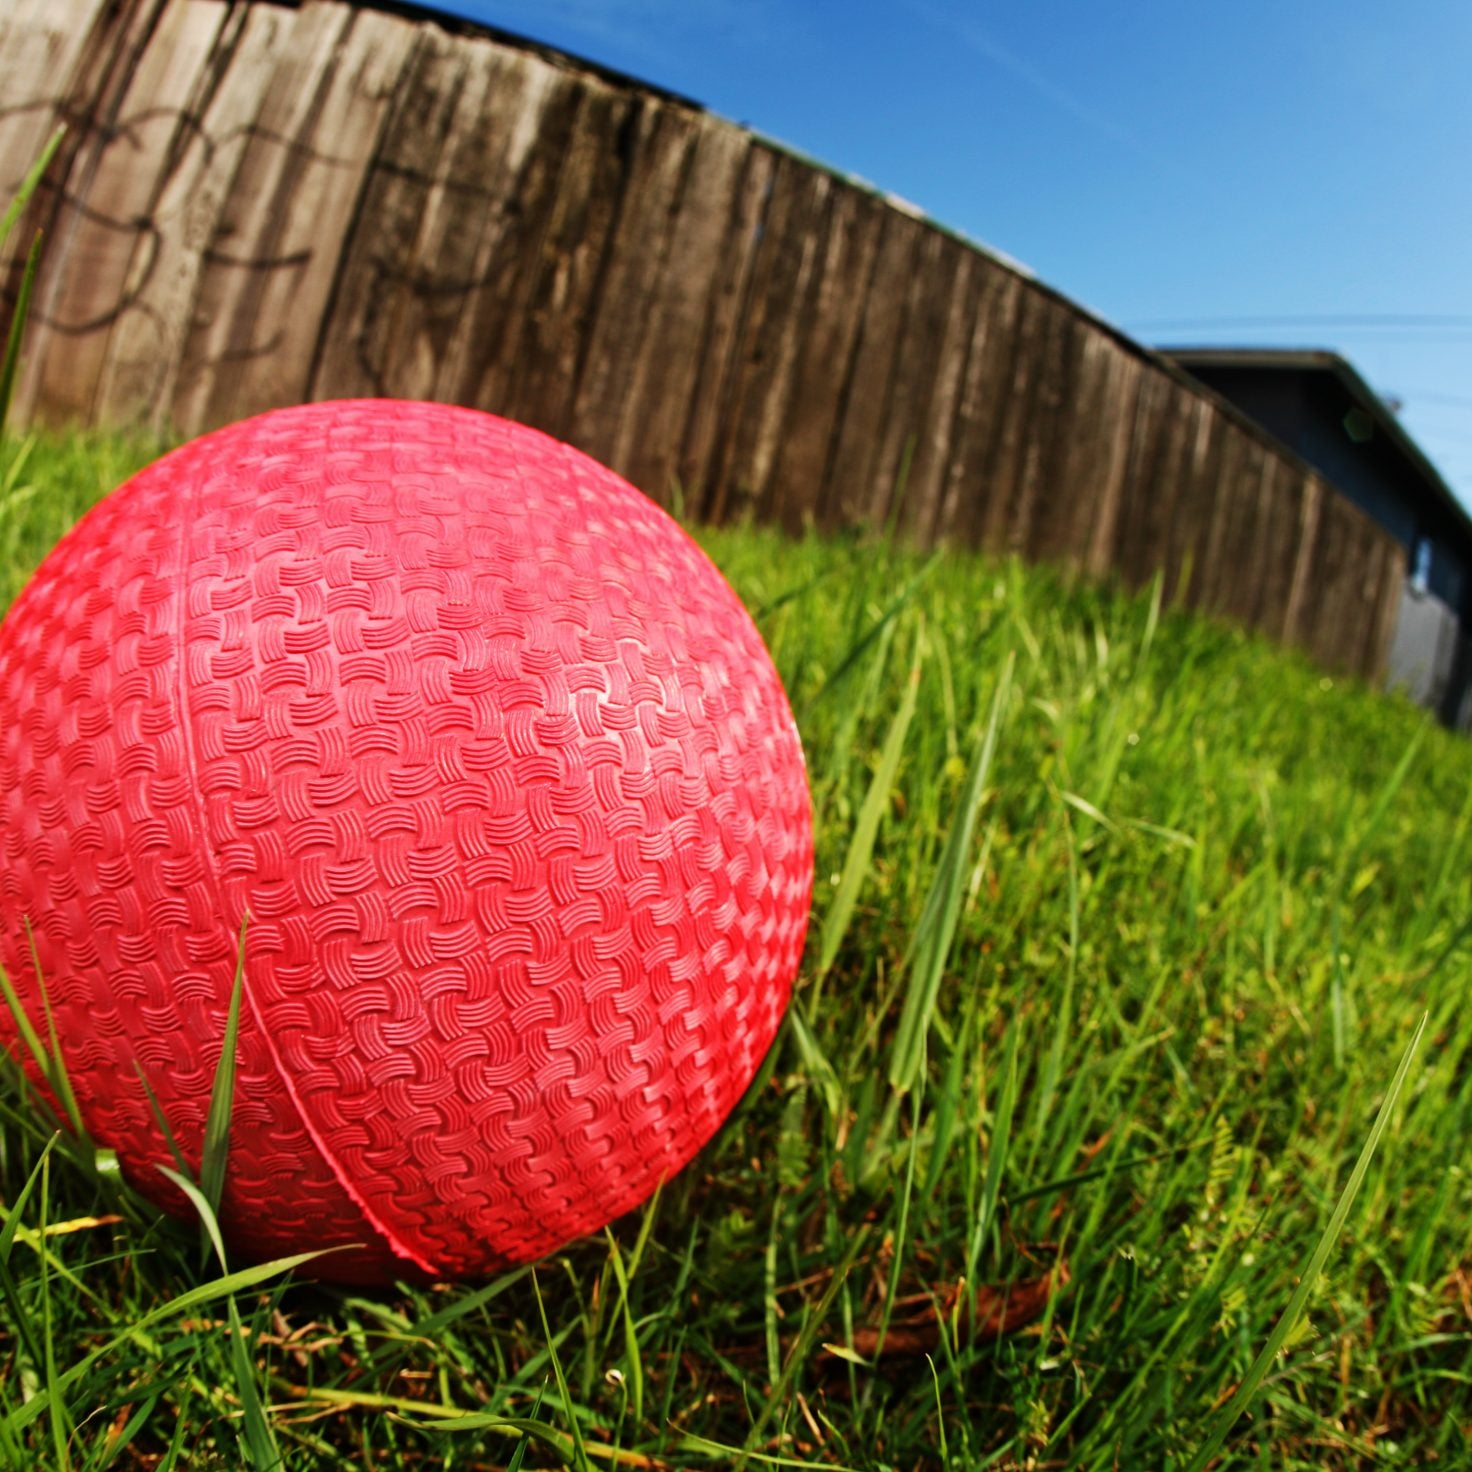 Prosecutors Dismiss Assault Charges Against 10-Year-Old In Dodgeball Case